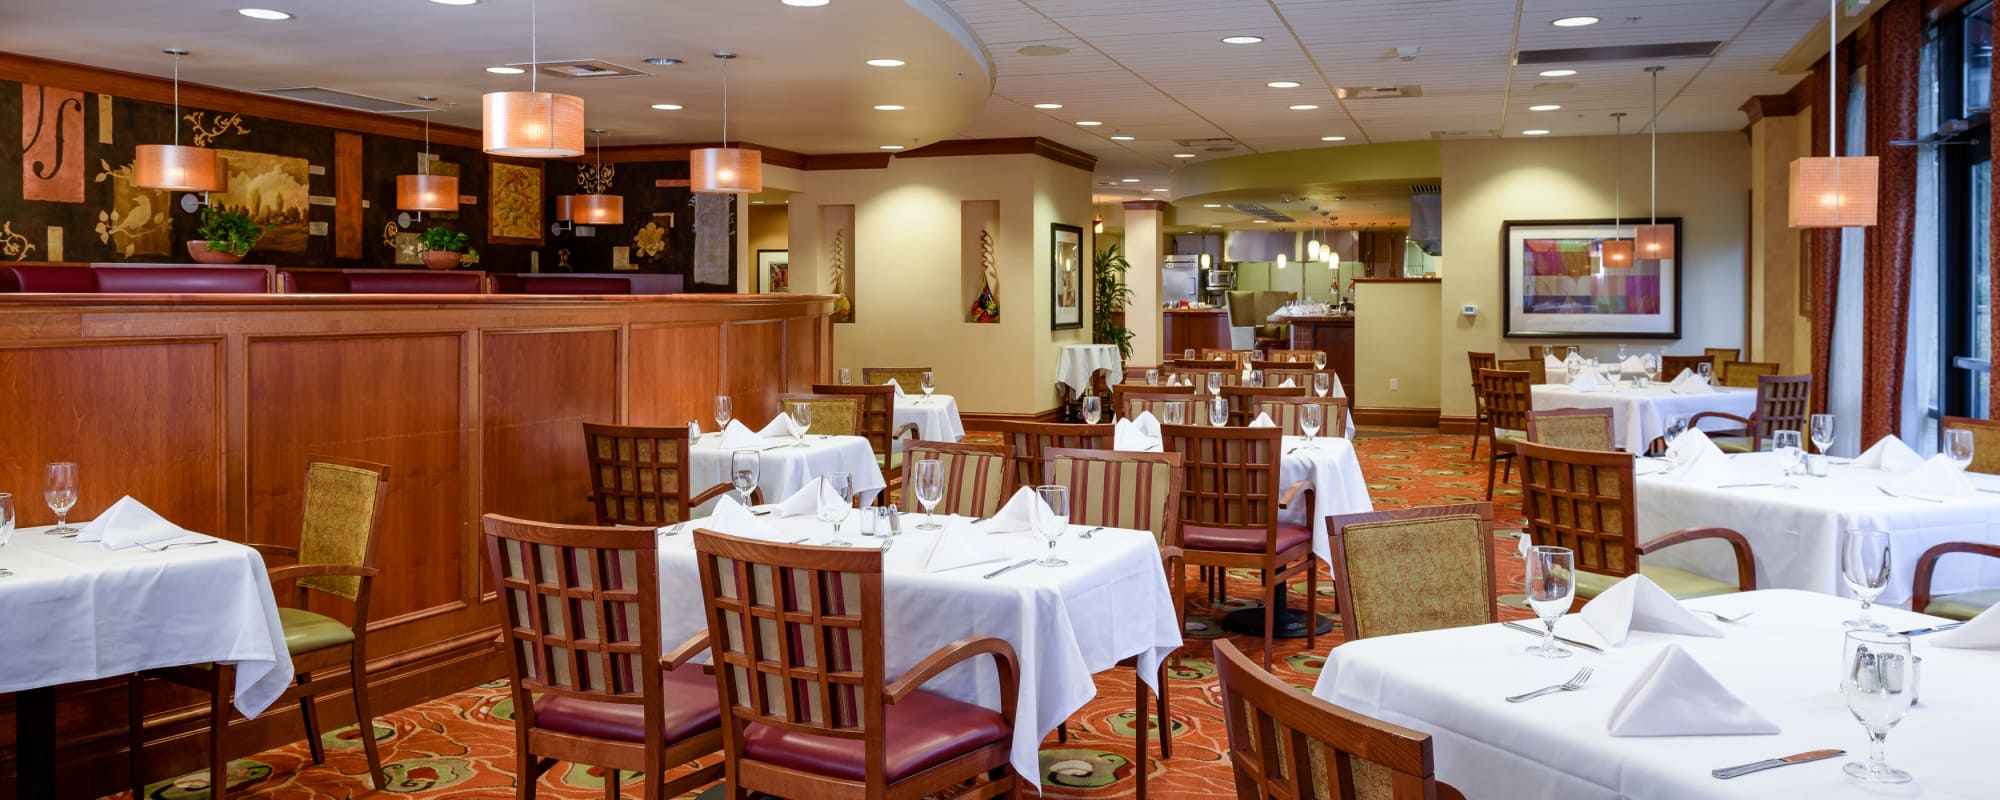 Dining area at The Bellettini in Bellevue, Washington